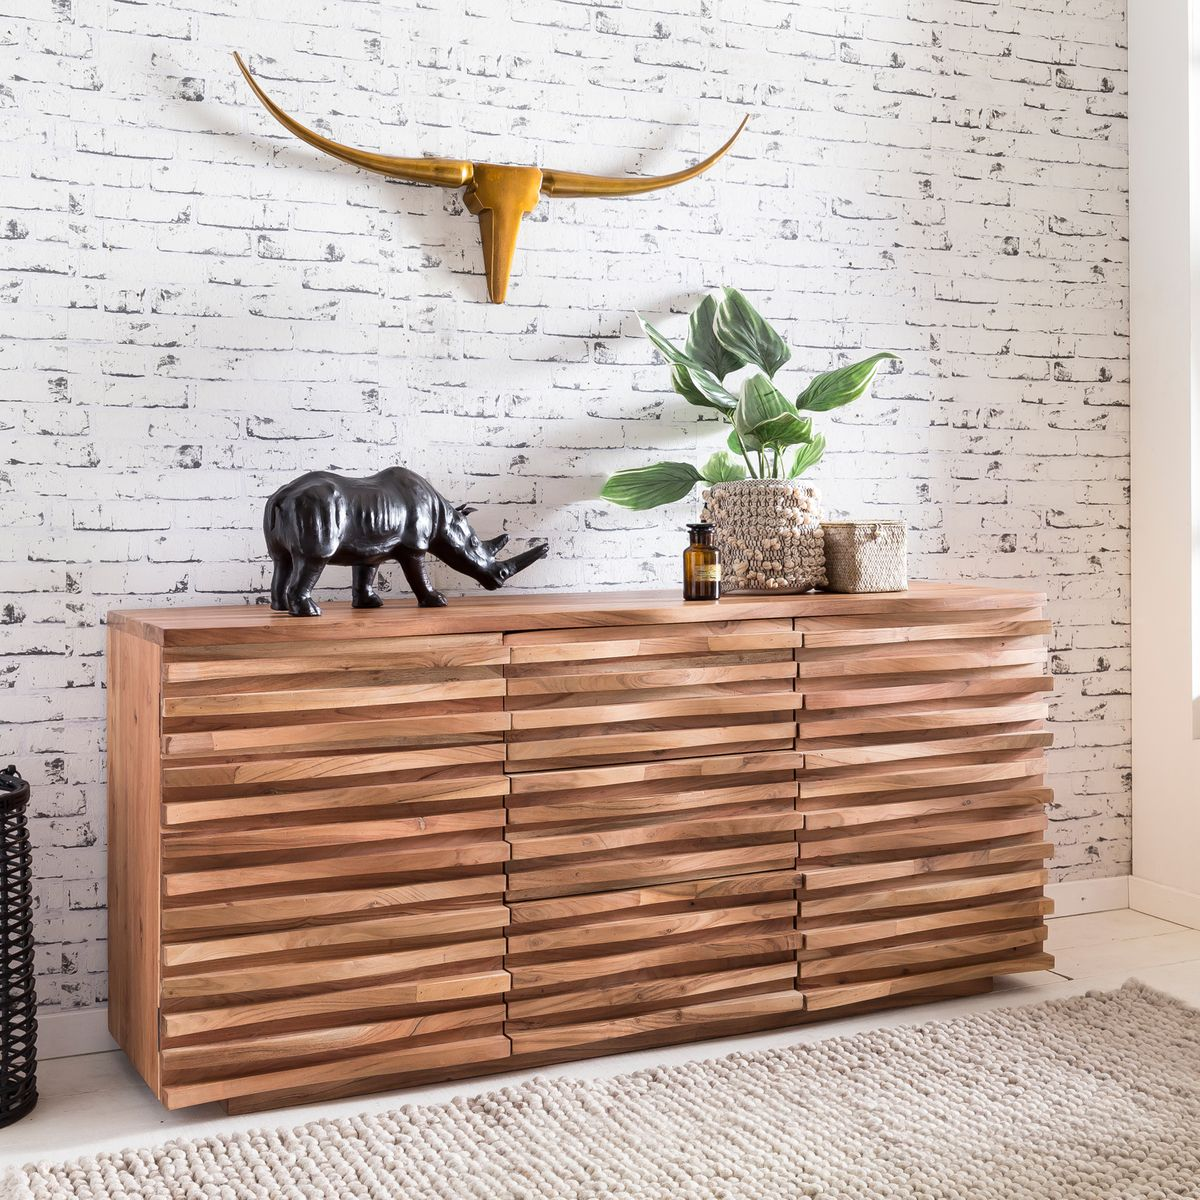 finebuy sideboard 160 x 75 x 43 cm massiv holz akazie. Black Bedroom Furniture Sets. Home Design Ideas